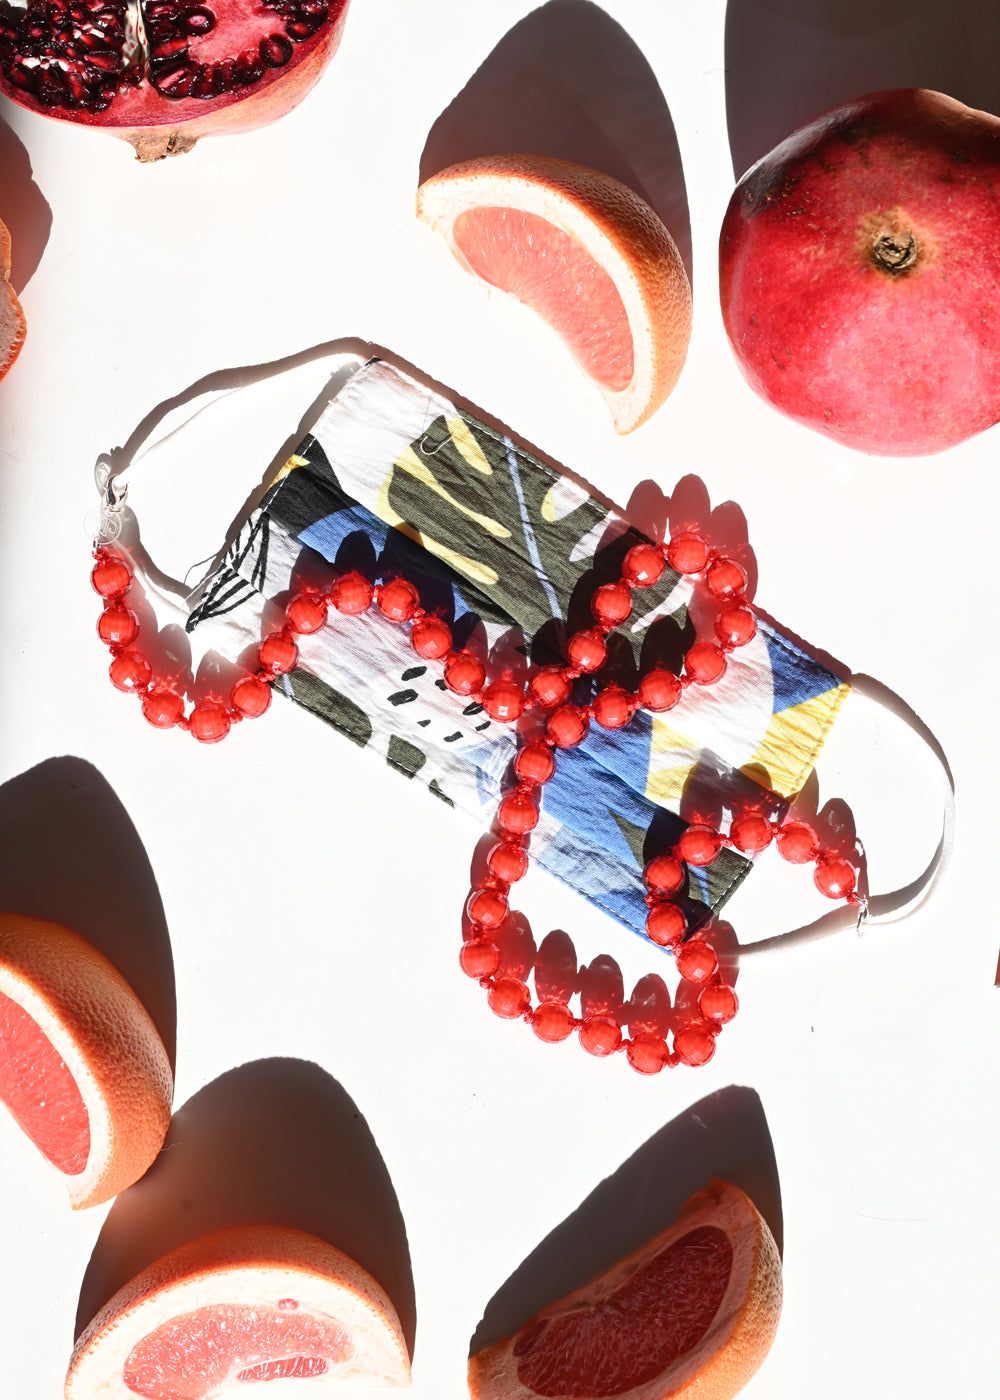 Sunglass/Mask Chain - Cherry